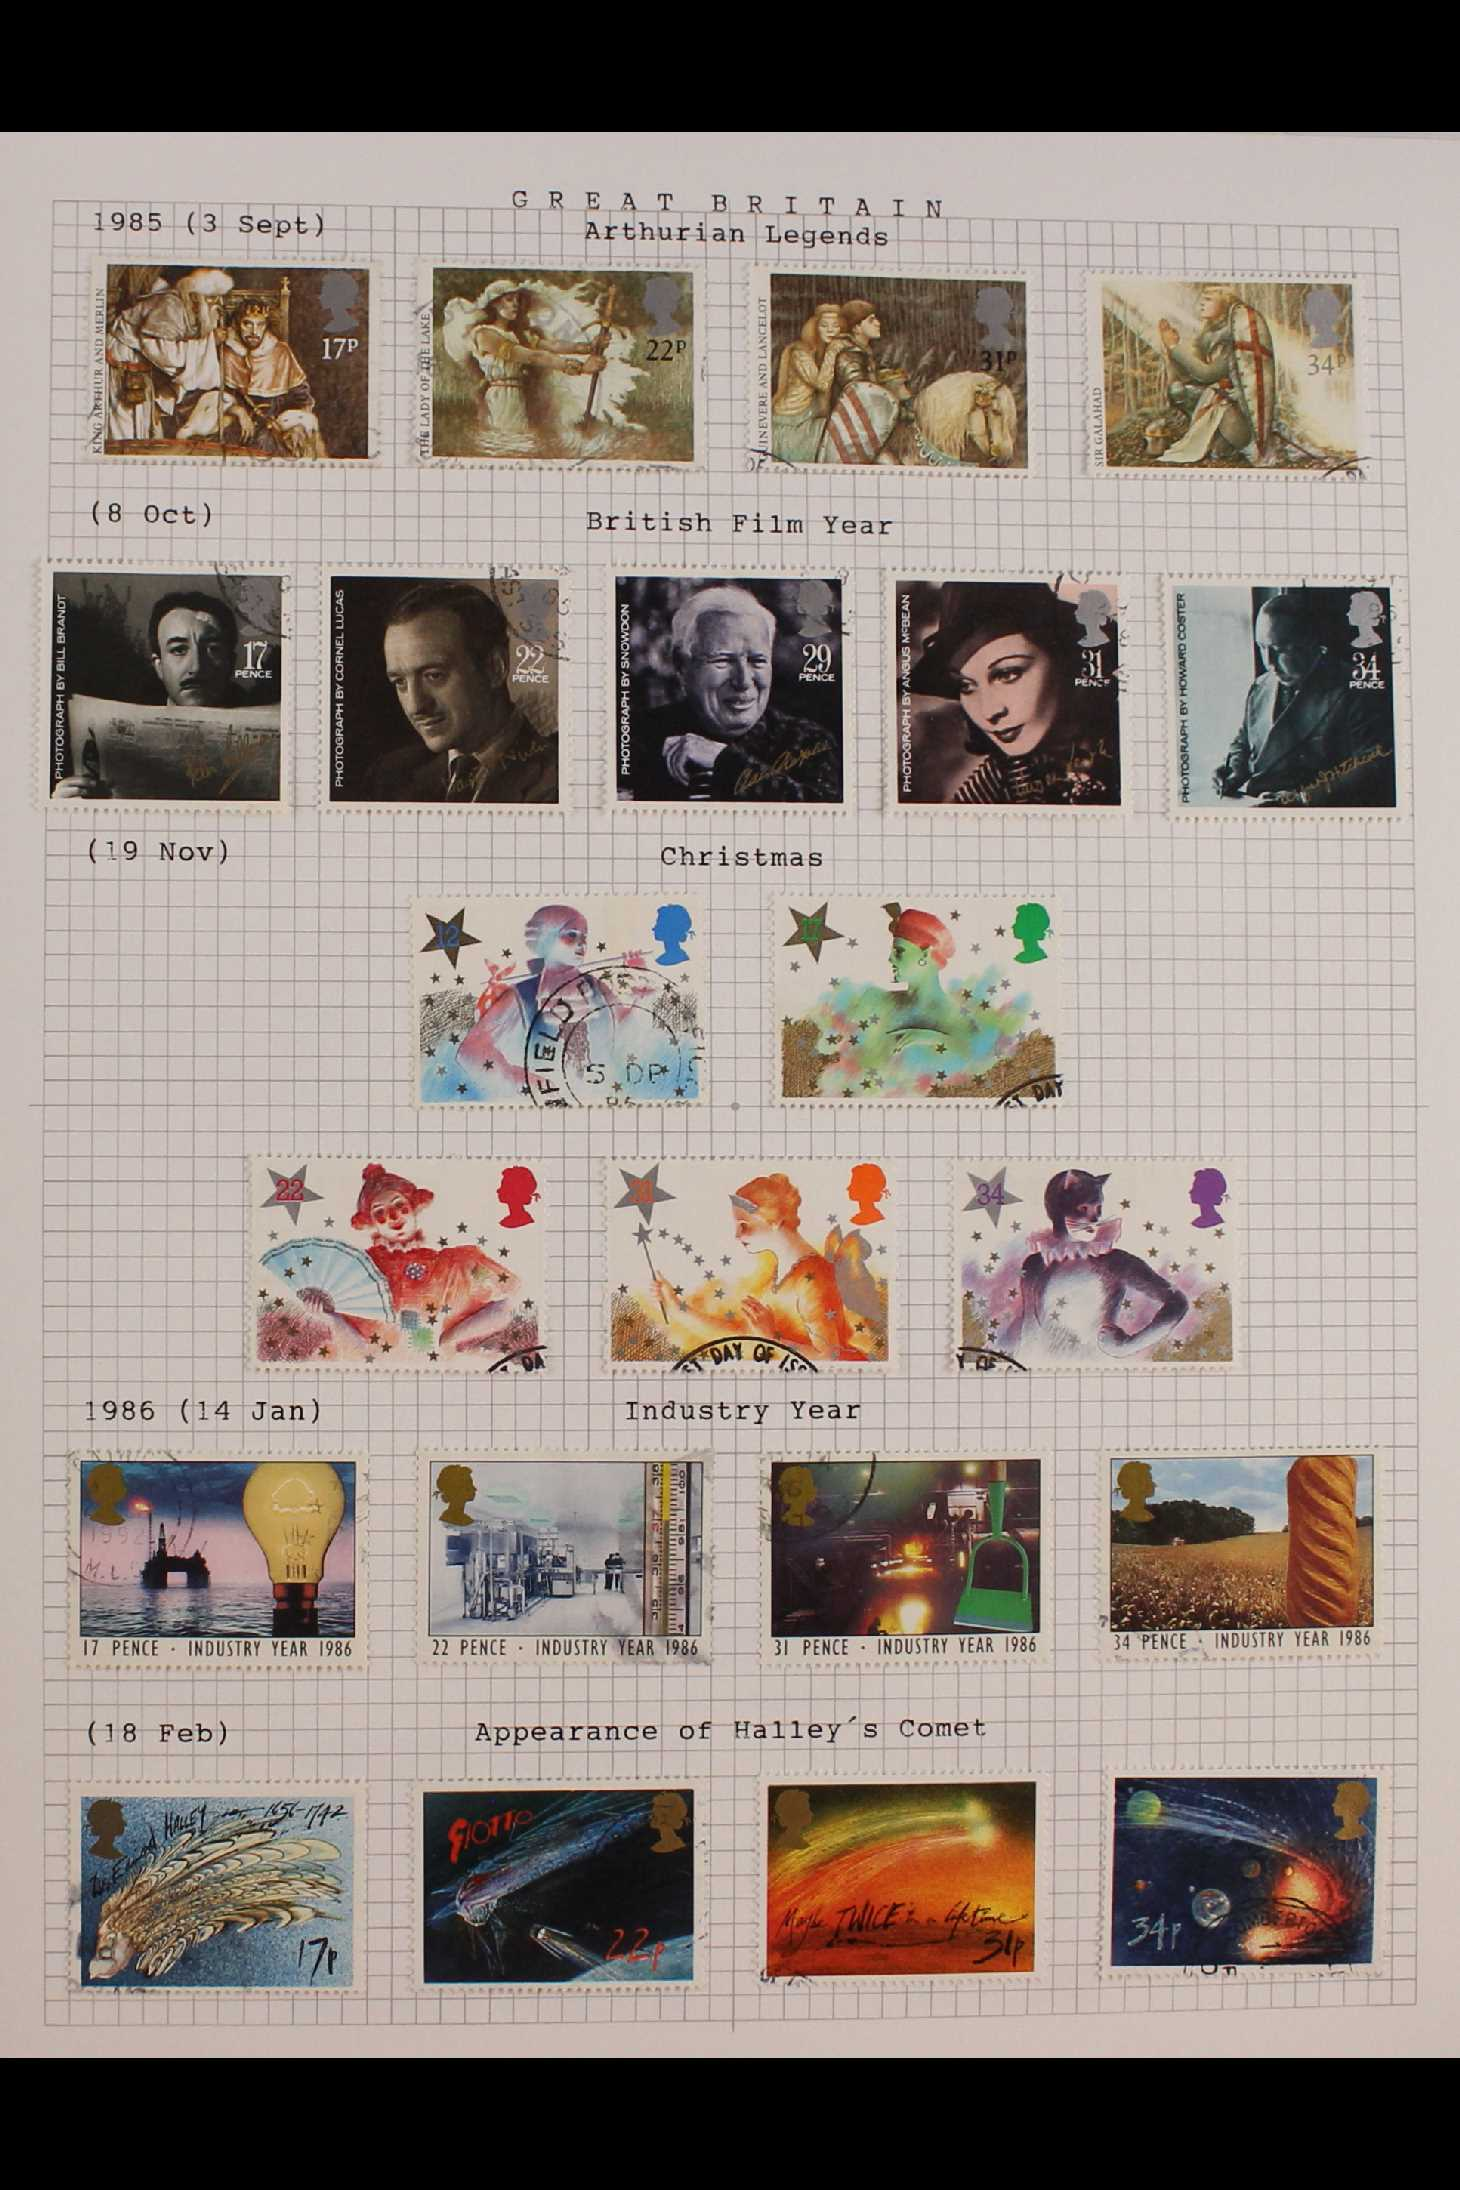 GB.ELIZABETH II 1953-1999 fine used collection in two albums with extensive Wilding & - Image 7 of 18